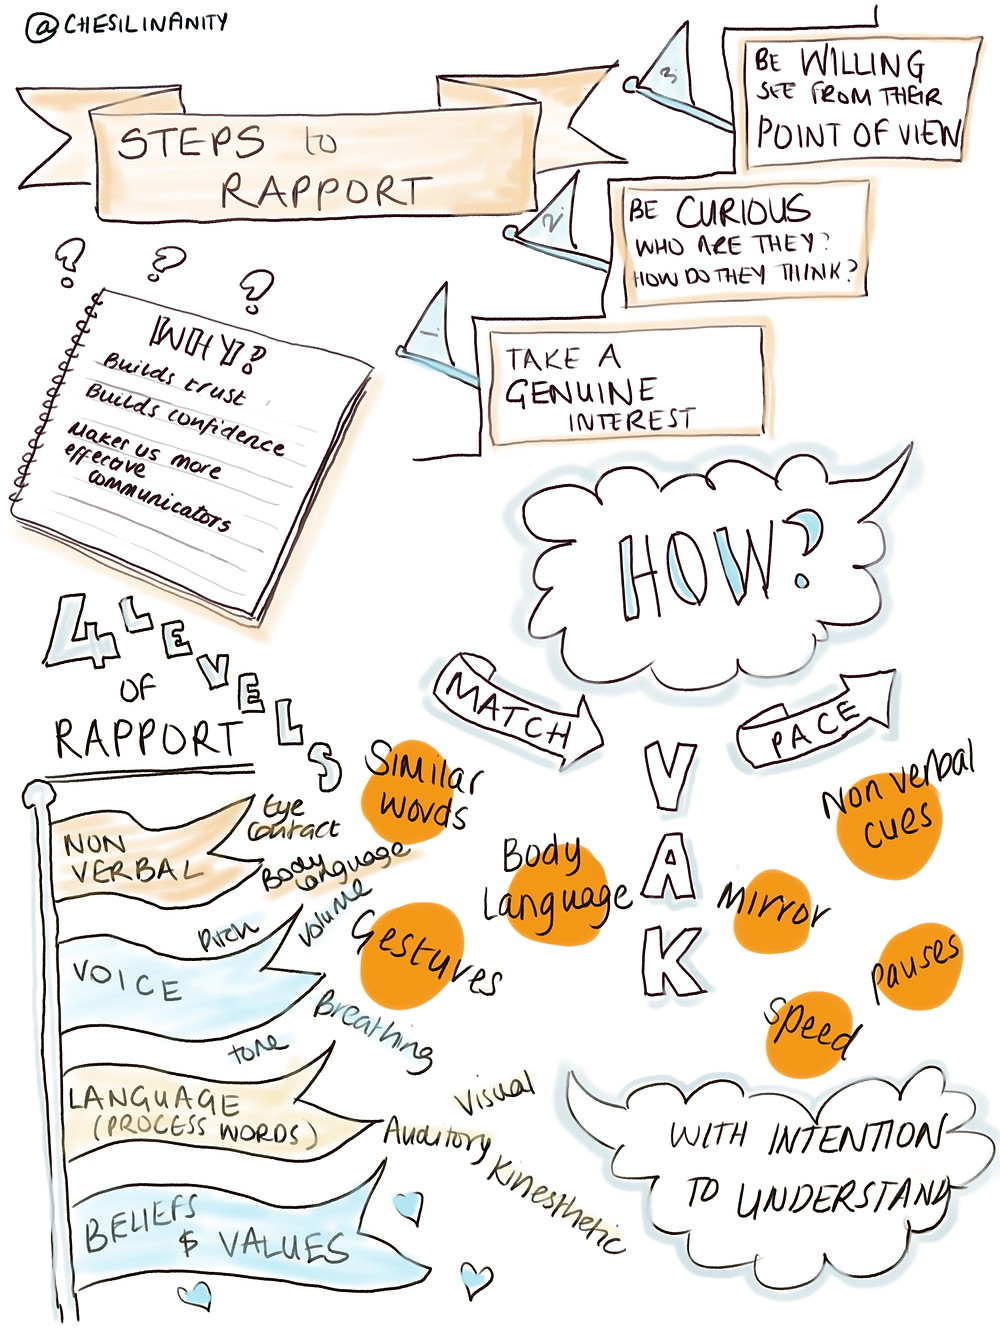 A sketch note from Chesil Infinity (Liz Rowe) detailing a little revision and learning on how to build rapport as part of an NLP journey